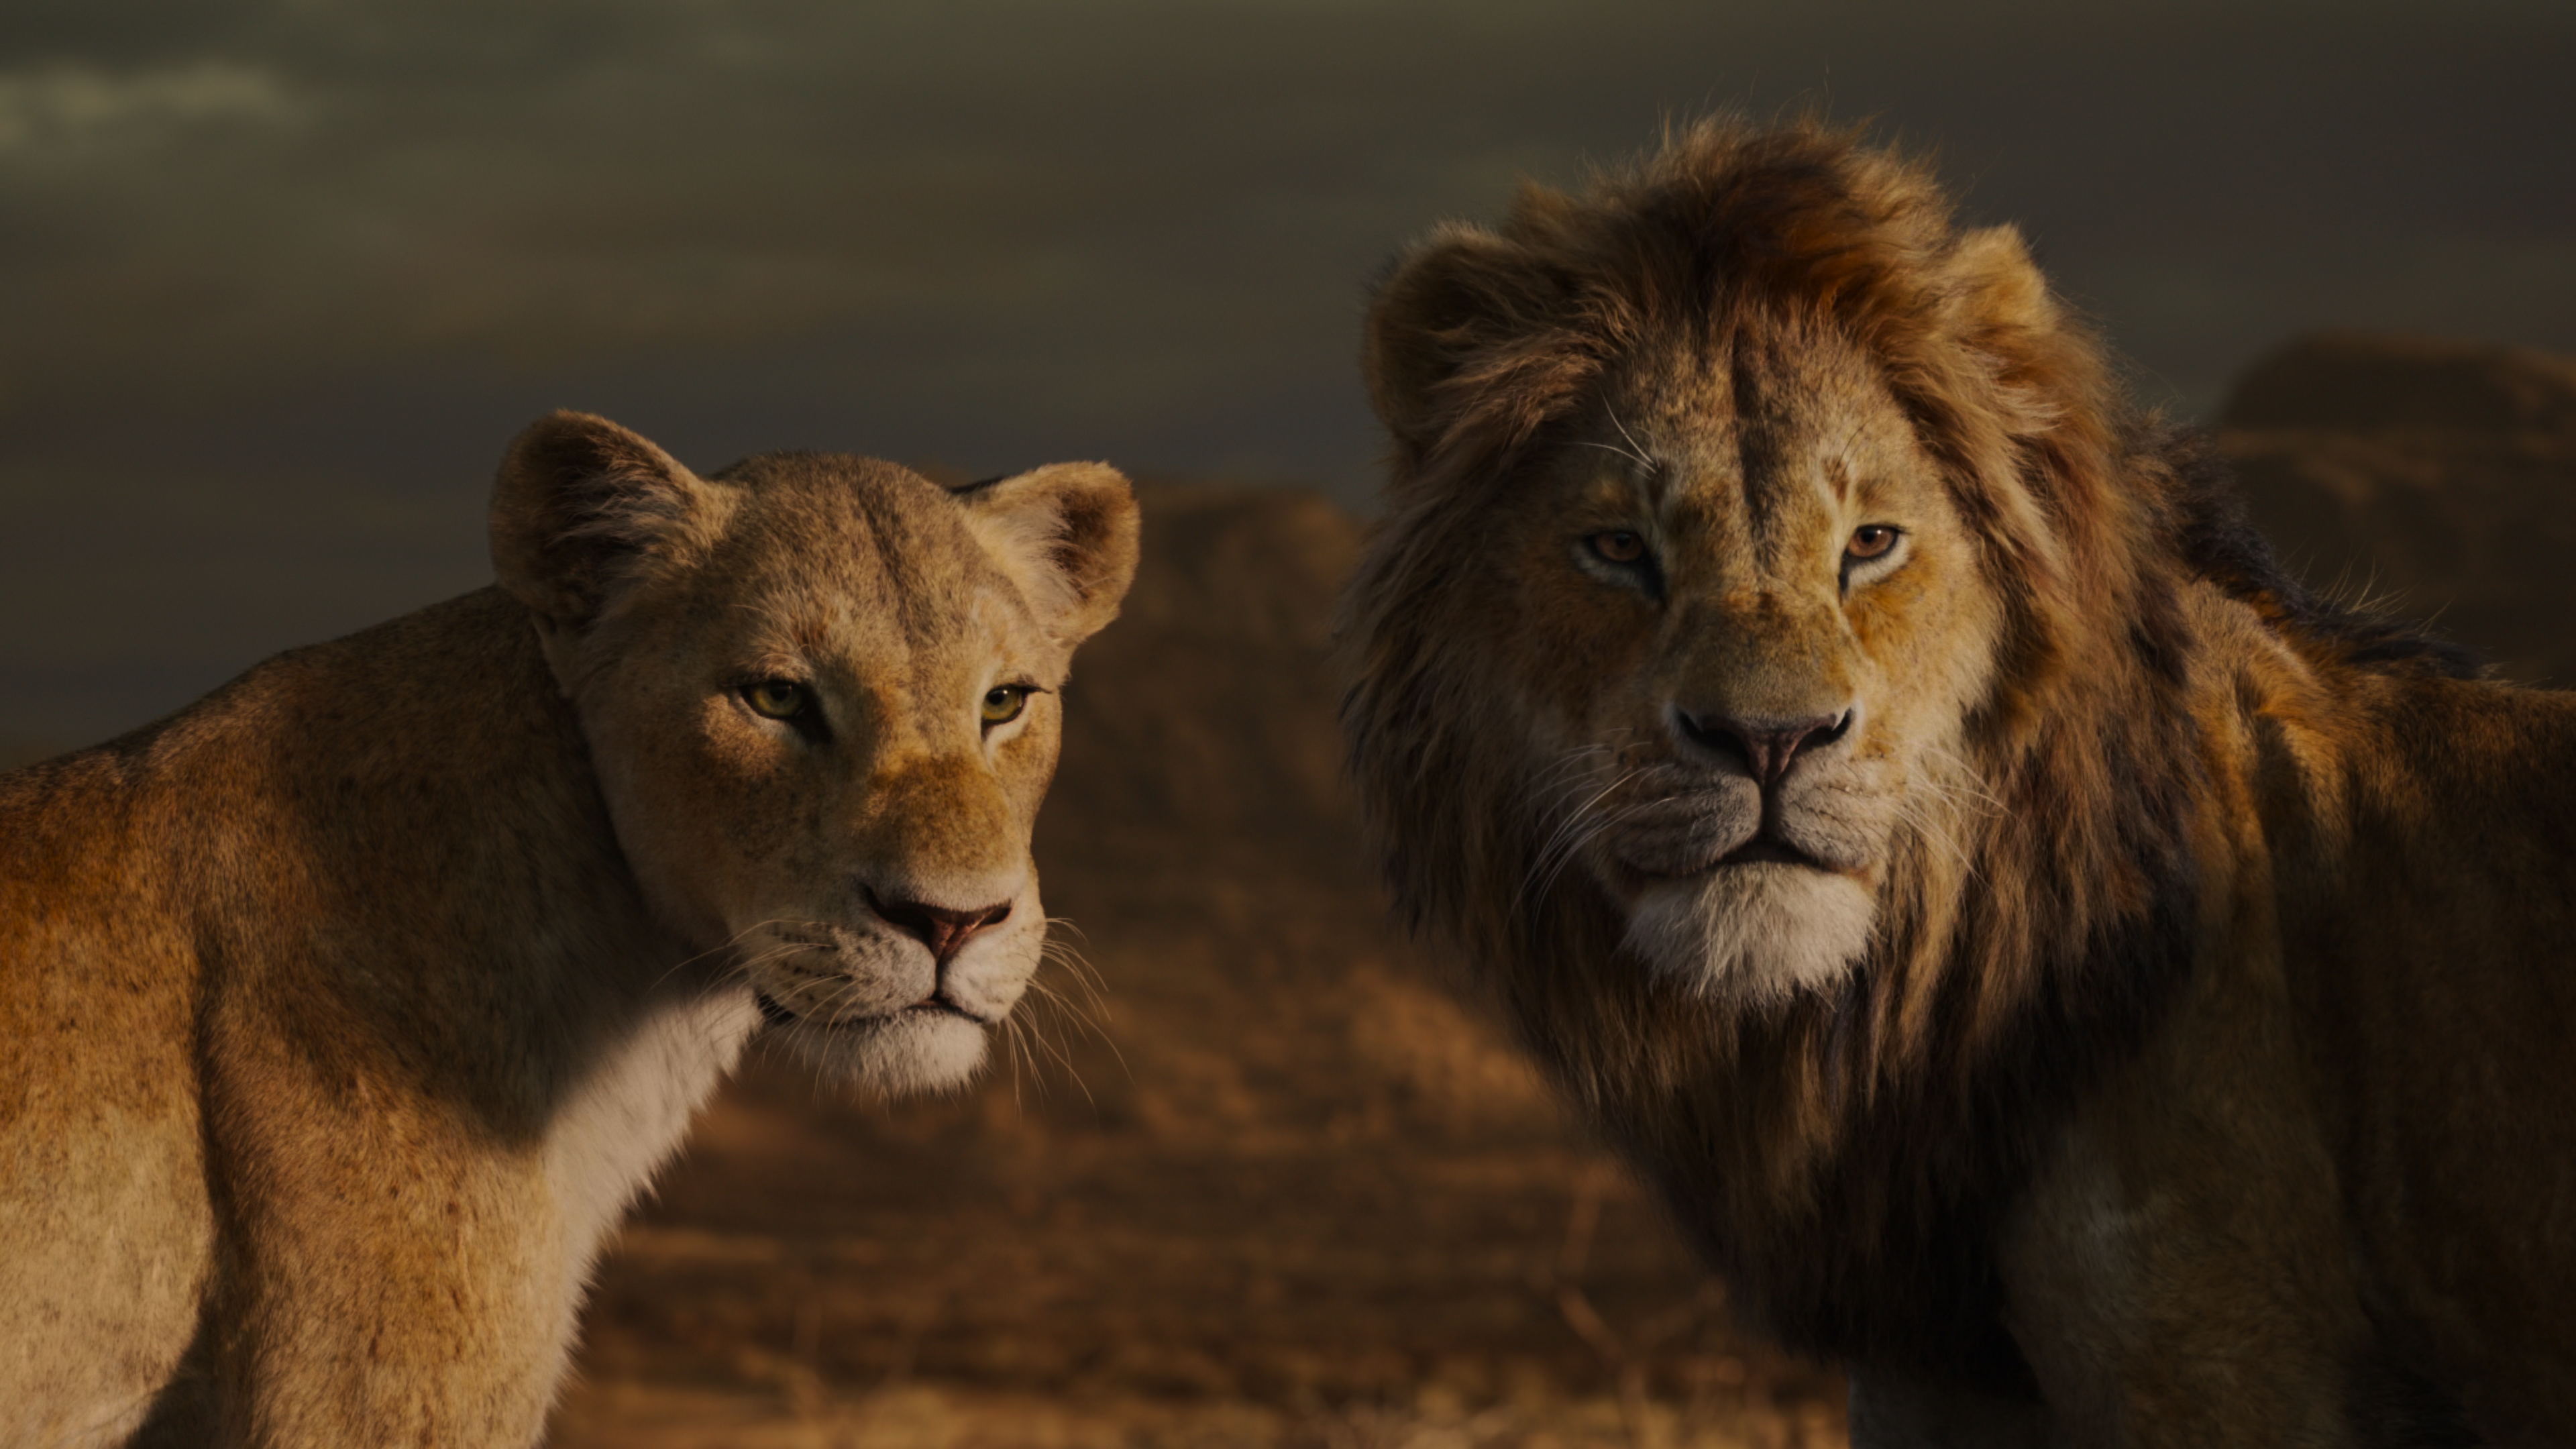 The Lion King 2019 4k Ultra Hd Blu Ray Ultra Hd Review High Def Digest